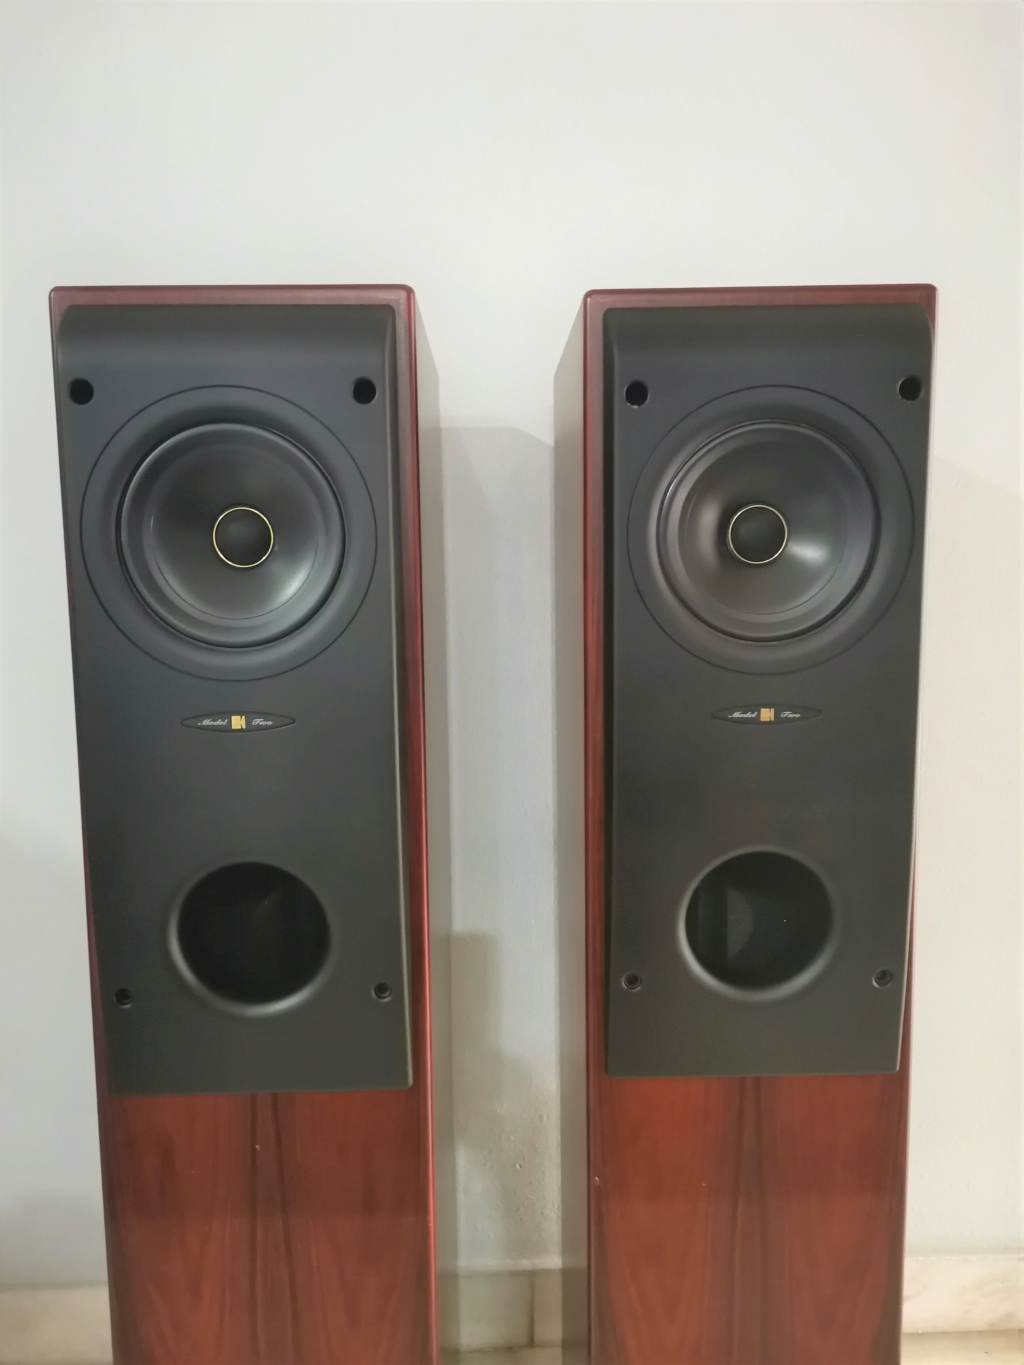 Kef reference model 2 (used) Img_2014